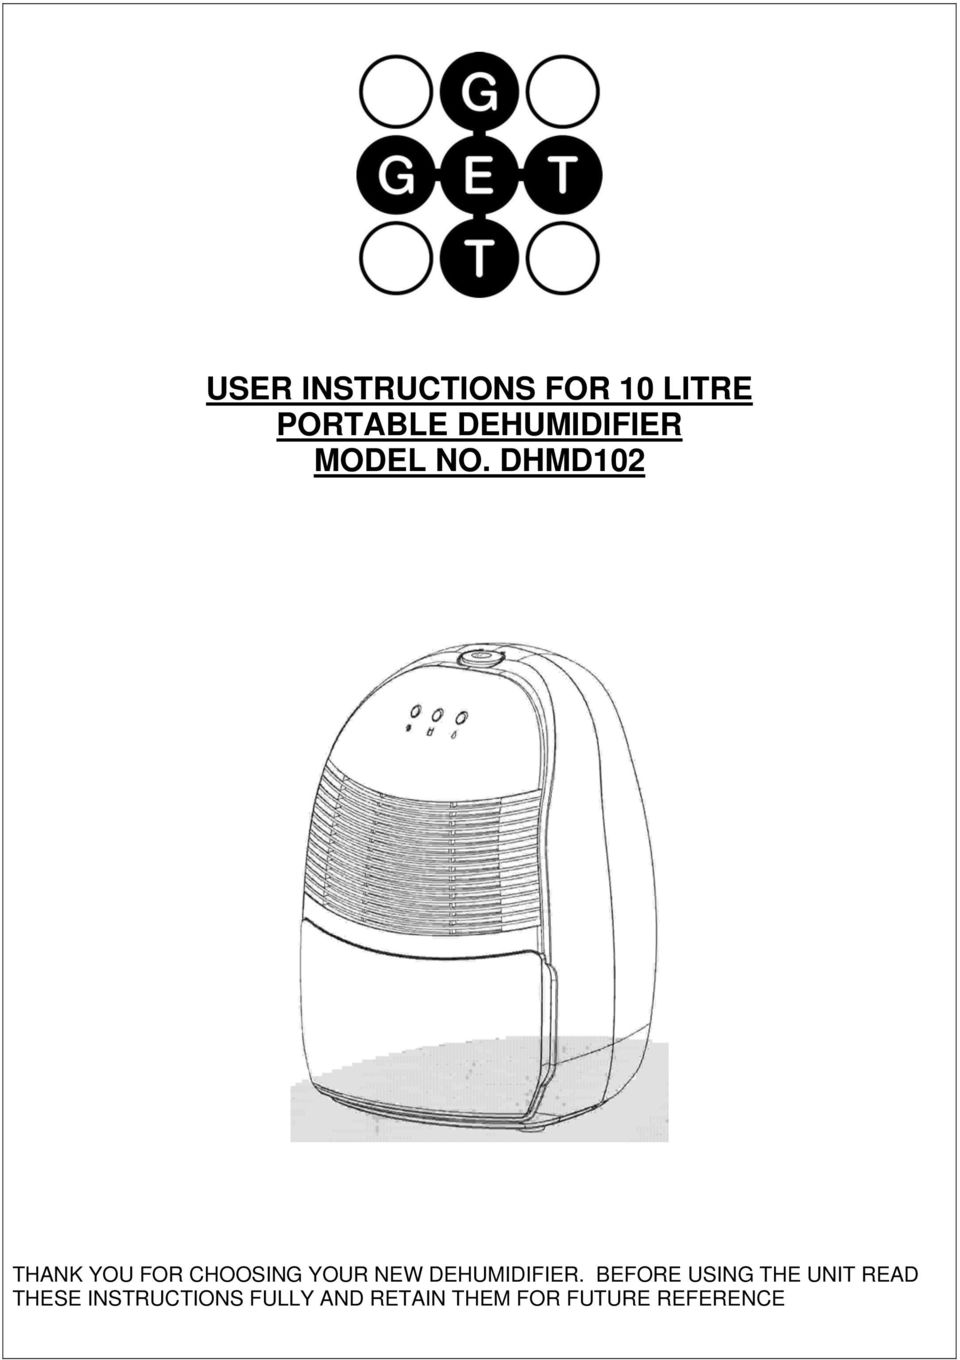 User Instructions For 10 Litre Portable Dehumidifier Model No Wiring Schematic Dhmd102 Thank You Choosing Your New